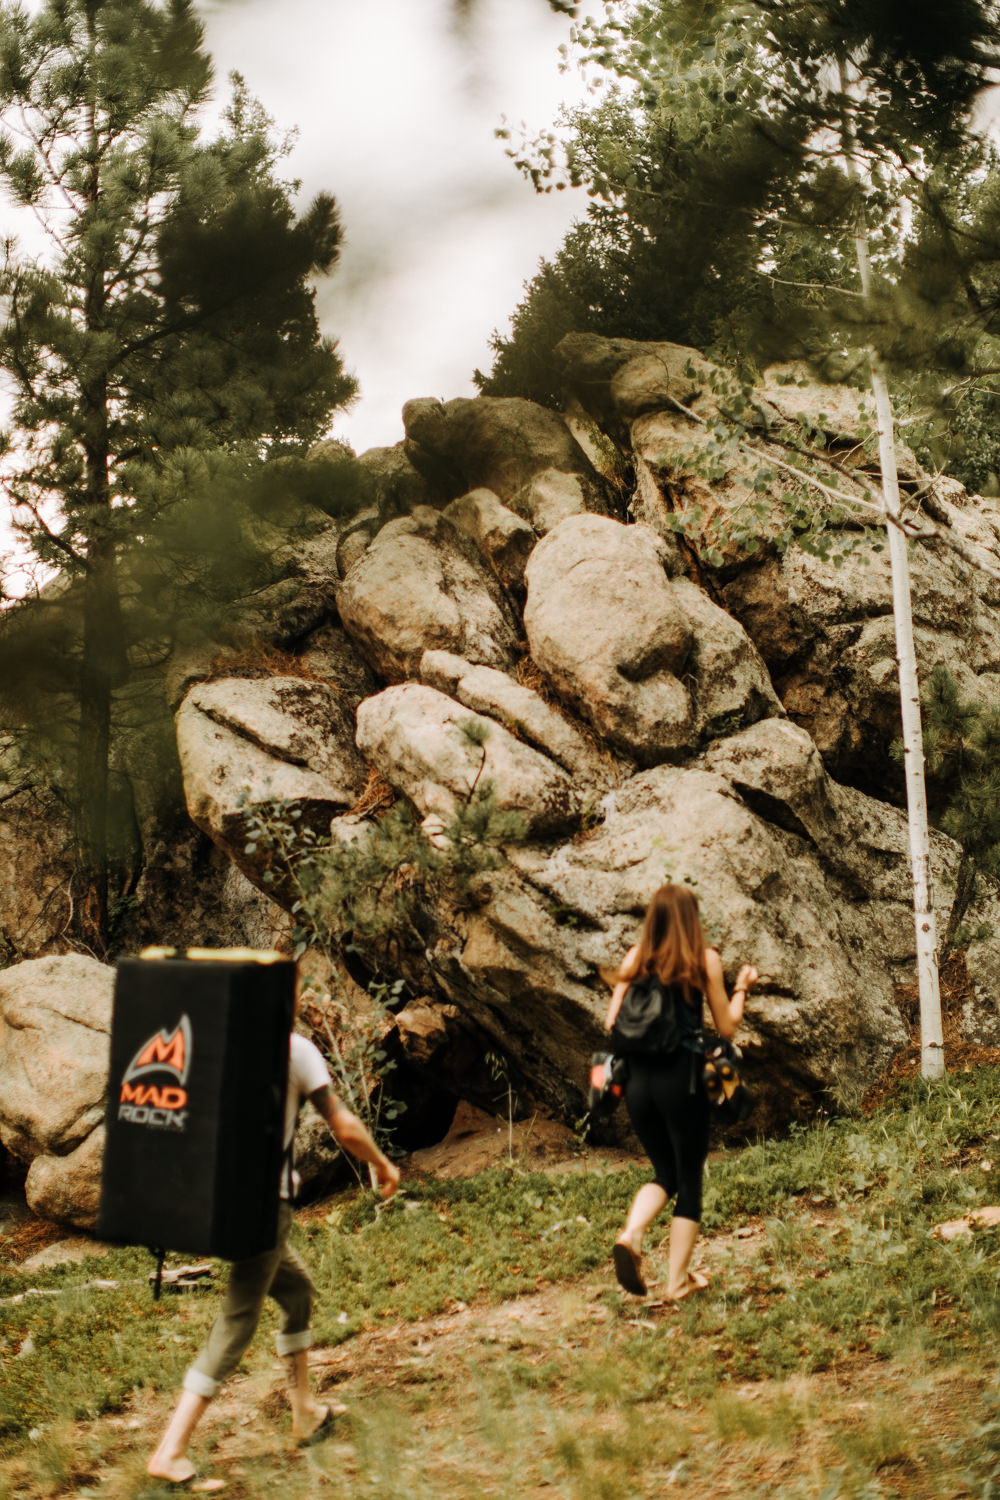 Couple walking through forested woods and boulders with climbing gear